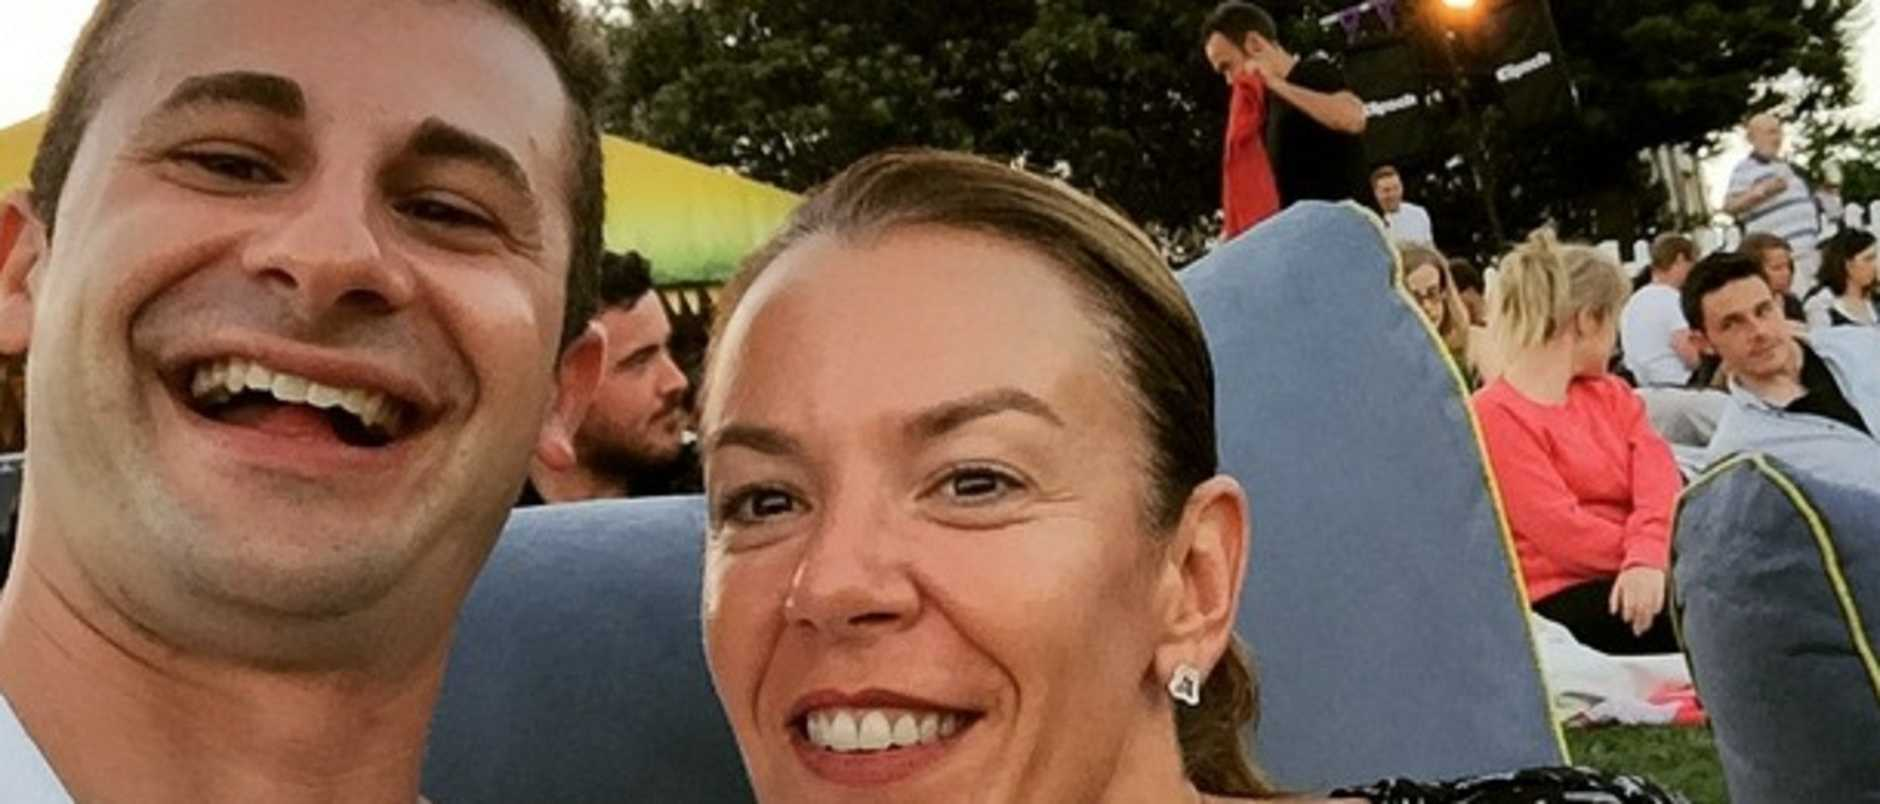 Missing Dover Heights woman Melissa Caddick shredded hundreds of documents in September — about the time ASIC kicked off its investigation into her business.